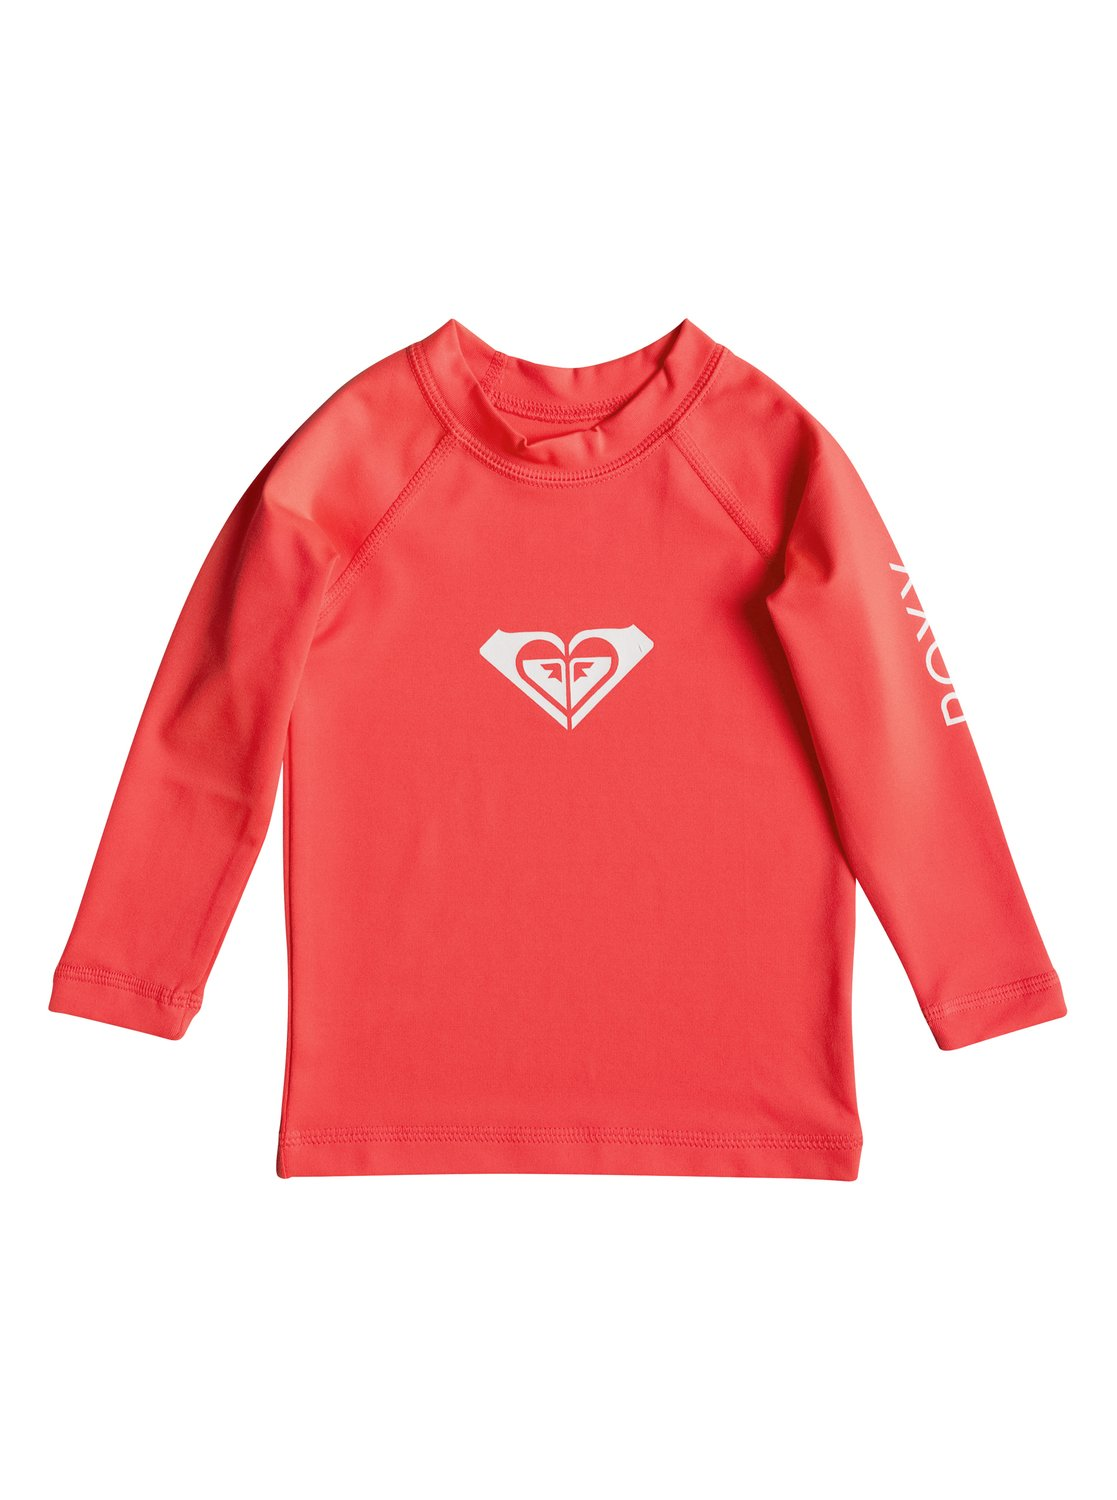 a45f16f5311ba 0 Whole Hearted - Camiseta de Lycra protección UV Naranja ERNWR03001 Roxy